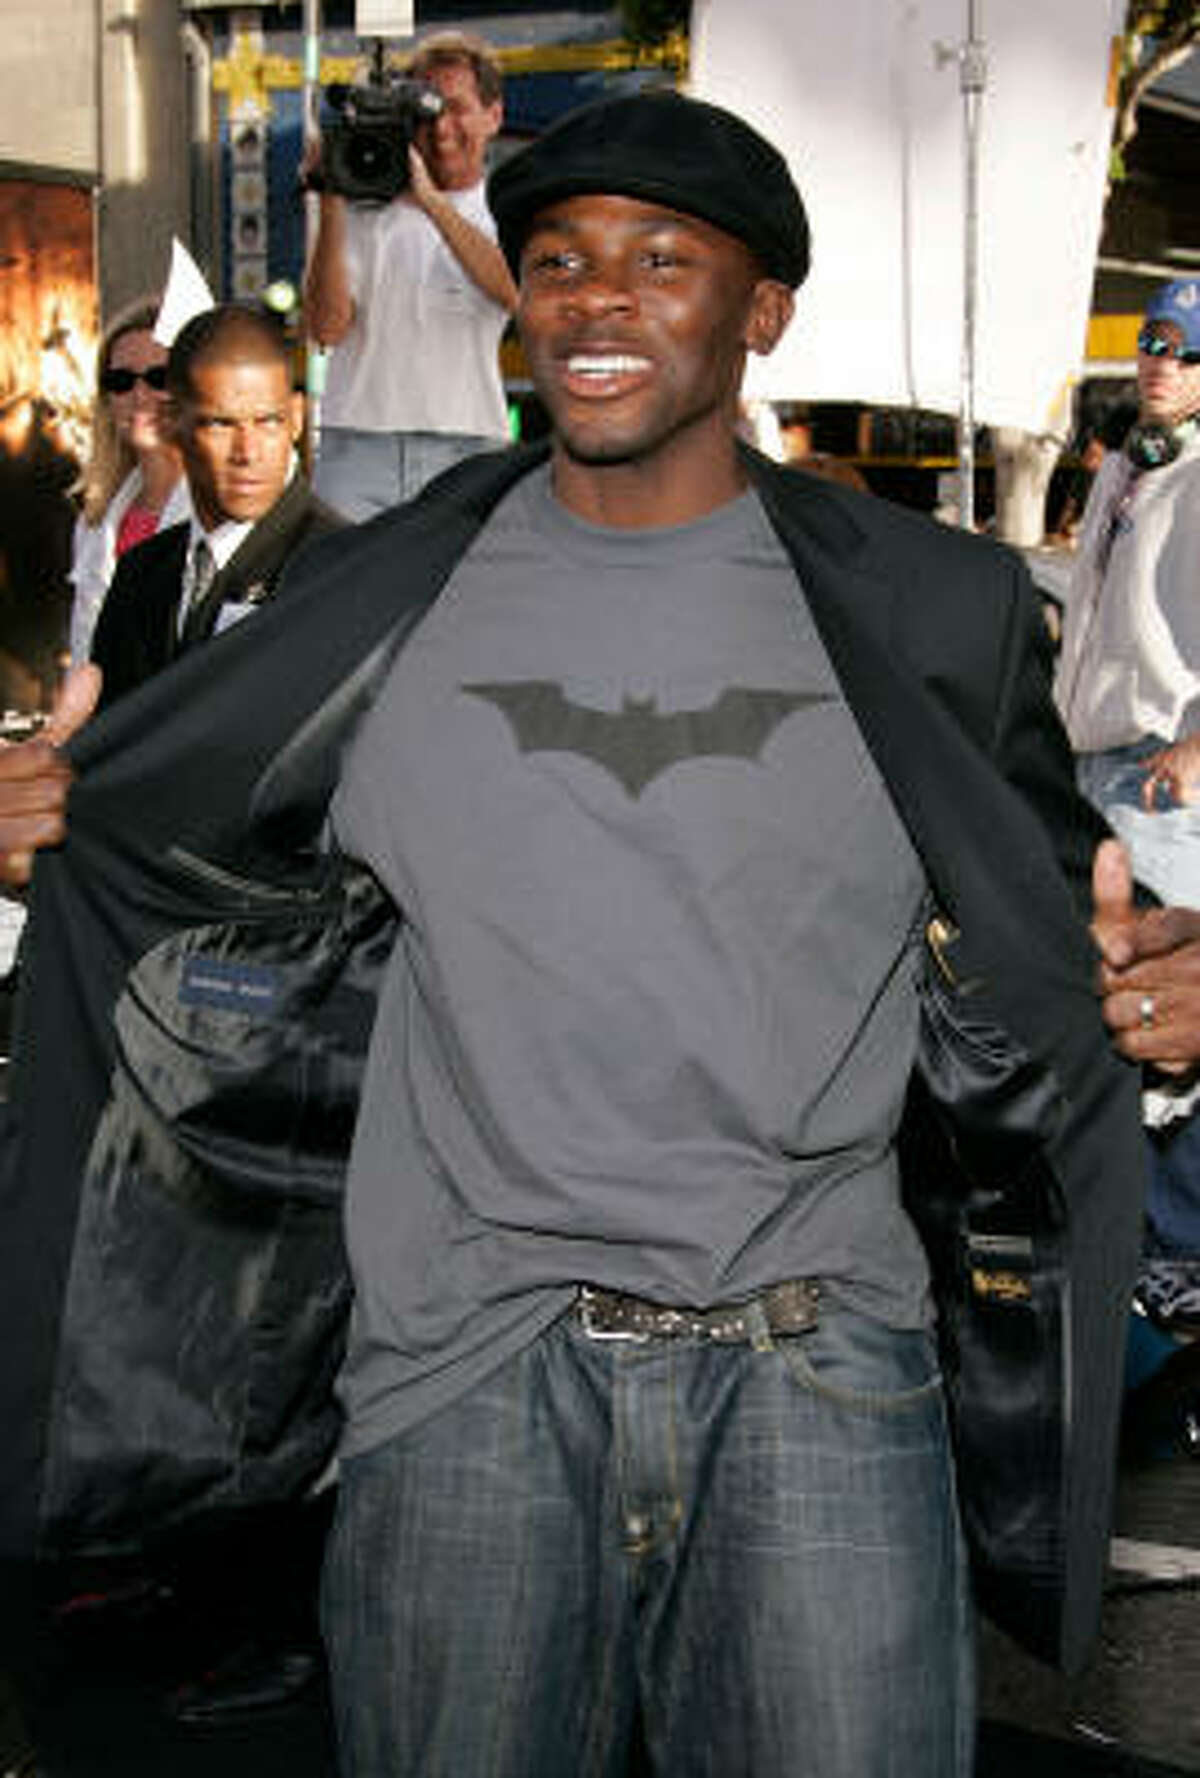 Here, Derek Luke shows off his favorite look: a hat with T-shirt and jeans.